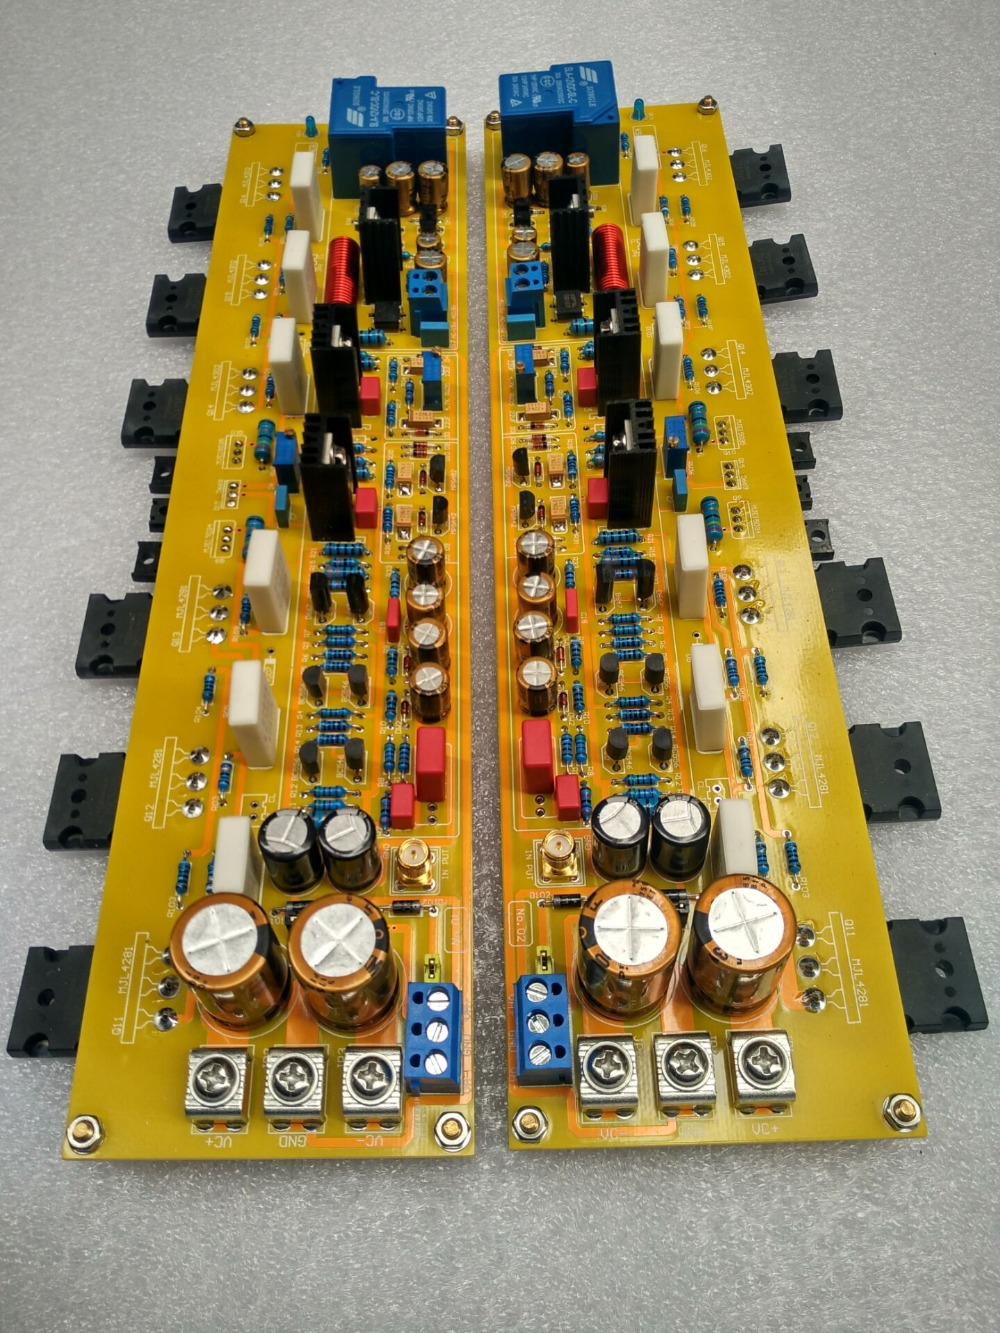 medium resolution of krell ksa50 amplifier circuit 50w 2sc5200 2sa1943 2sc2073 2sa940 2sc5171 2sa1930 tube class a pure after class amplifier board in amplifier from consumer